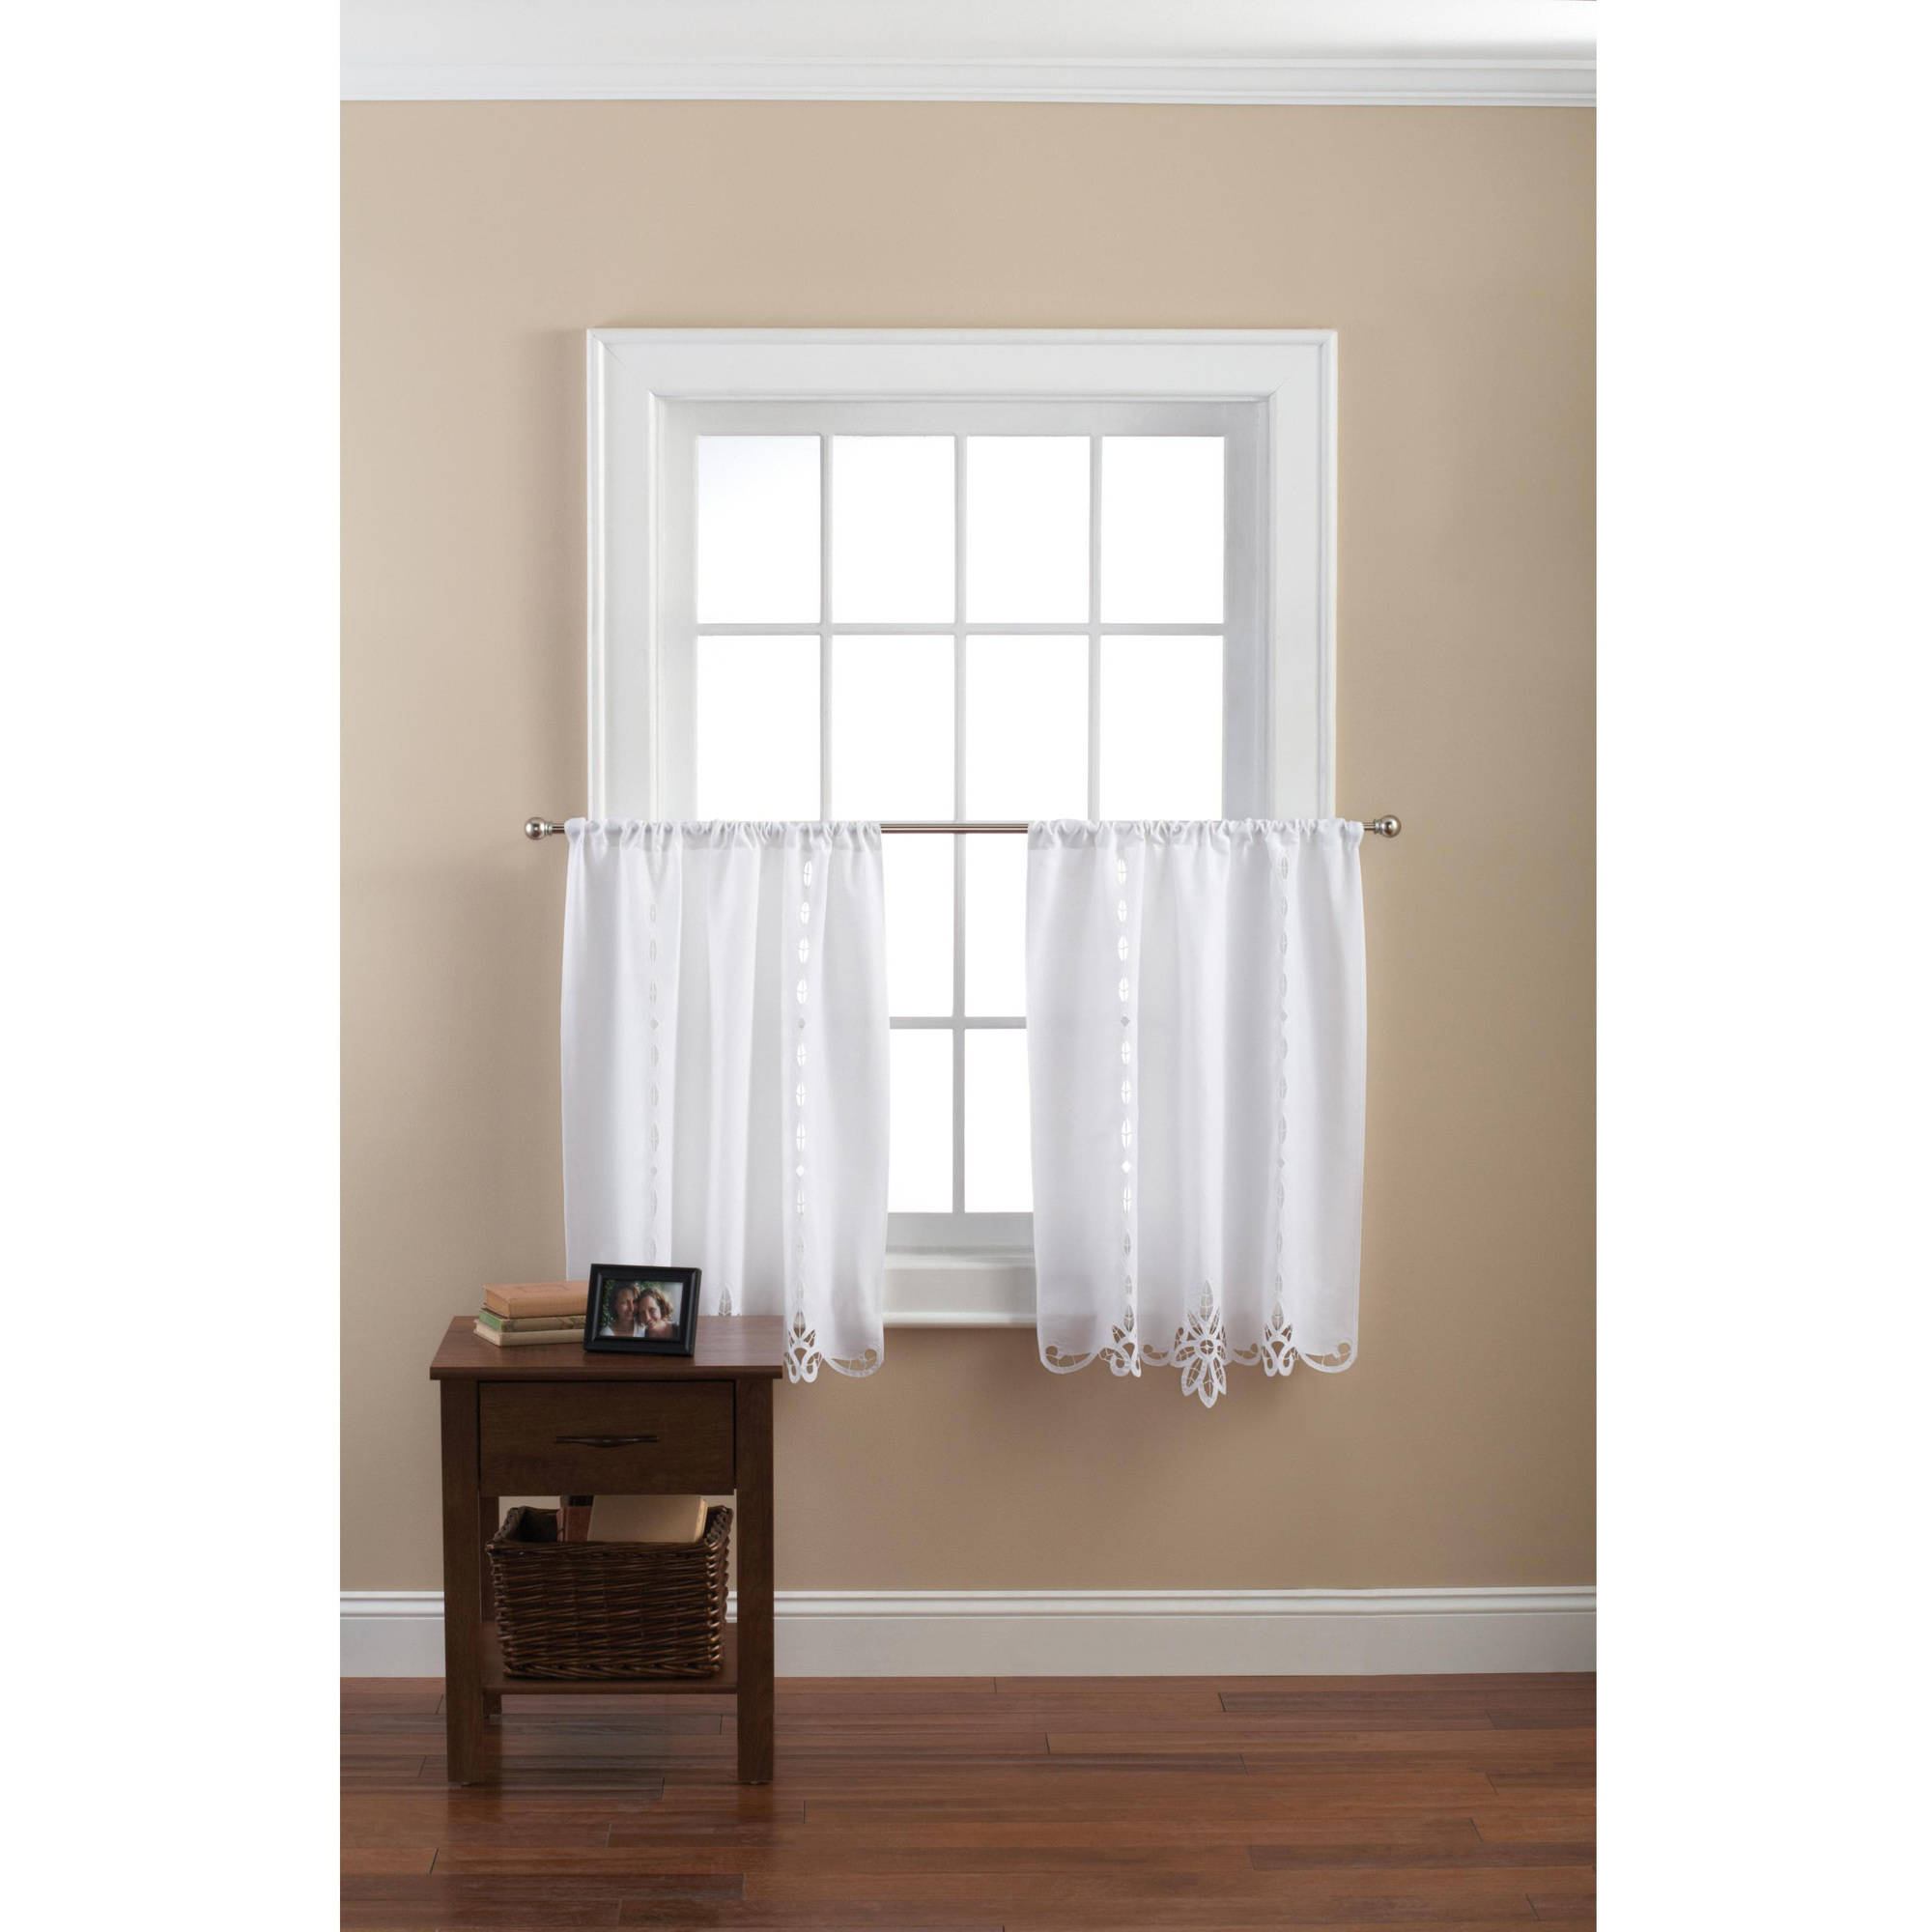 Mainstays Battenberg Poly/Cotton Kitchen Curtains, Set of 2